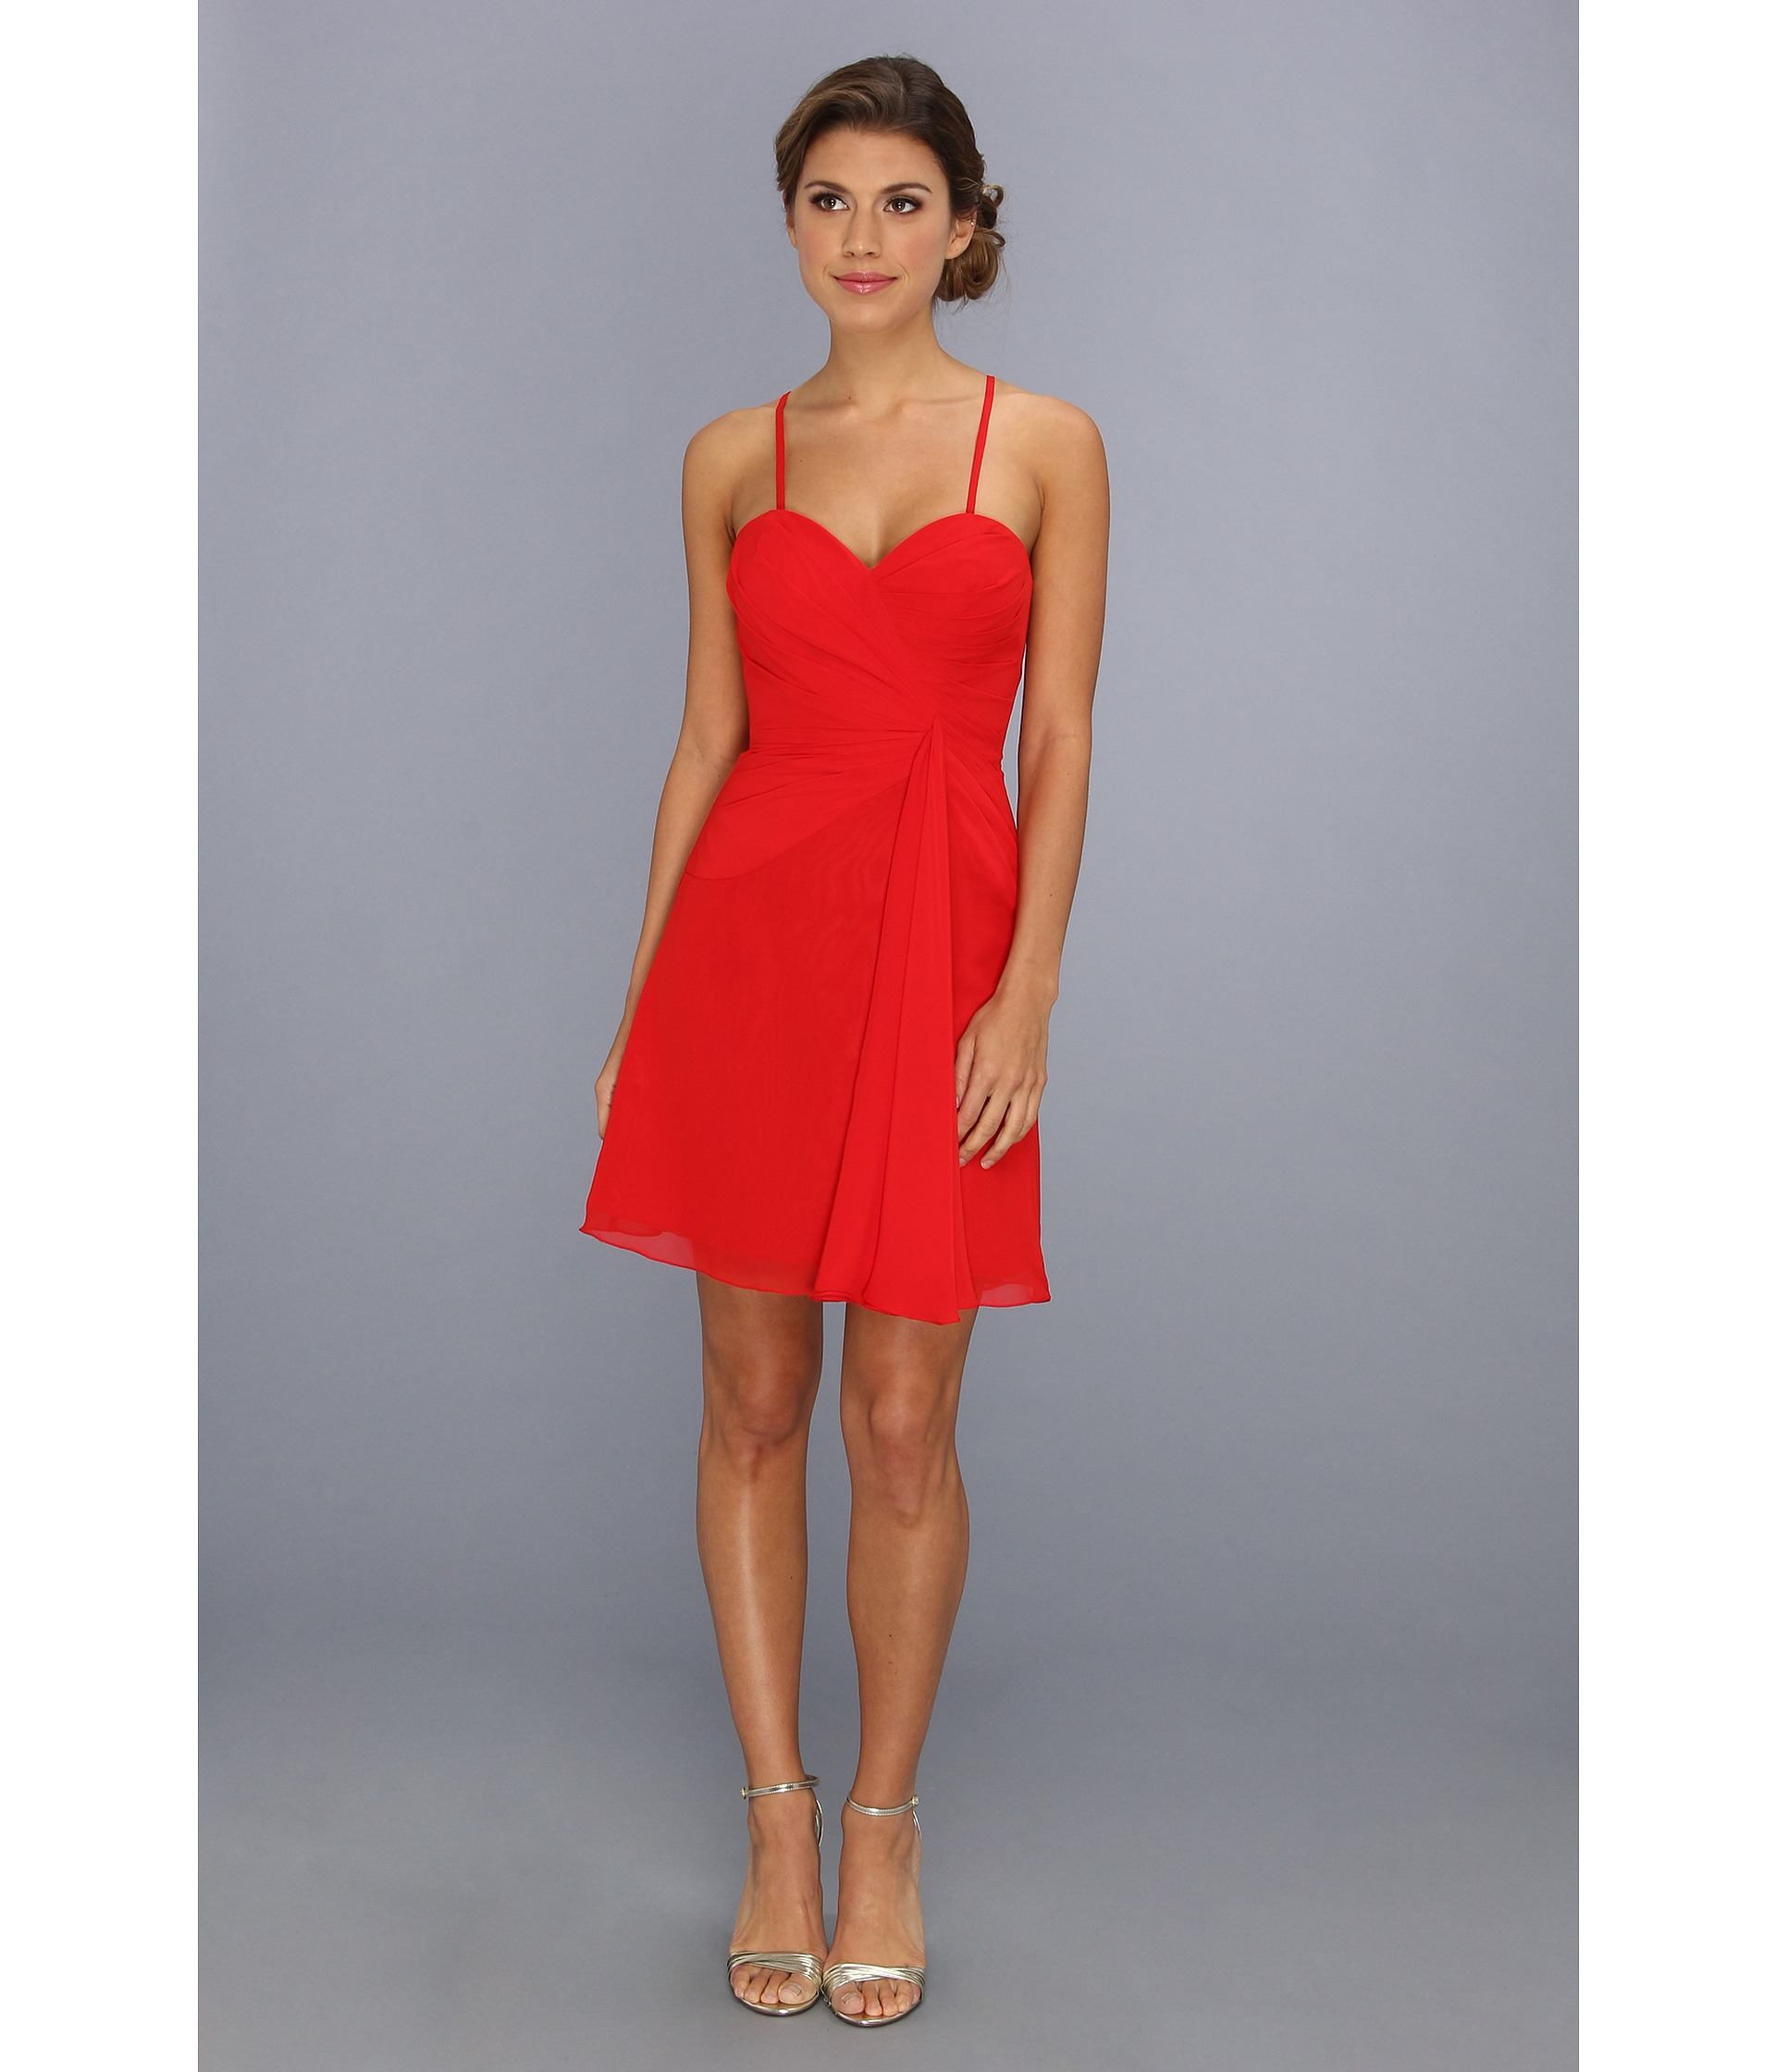 Faviana Short Strapless Sweetheart Dress 7075a in Red - Lyst